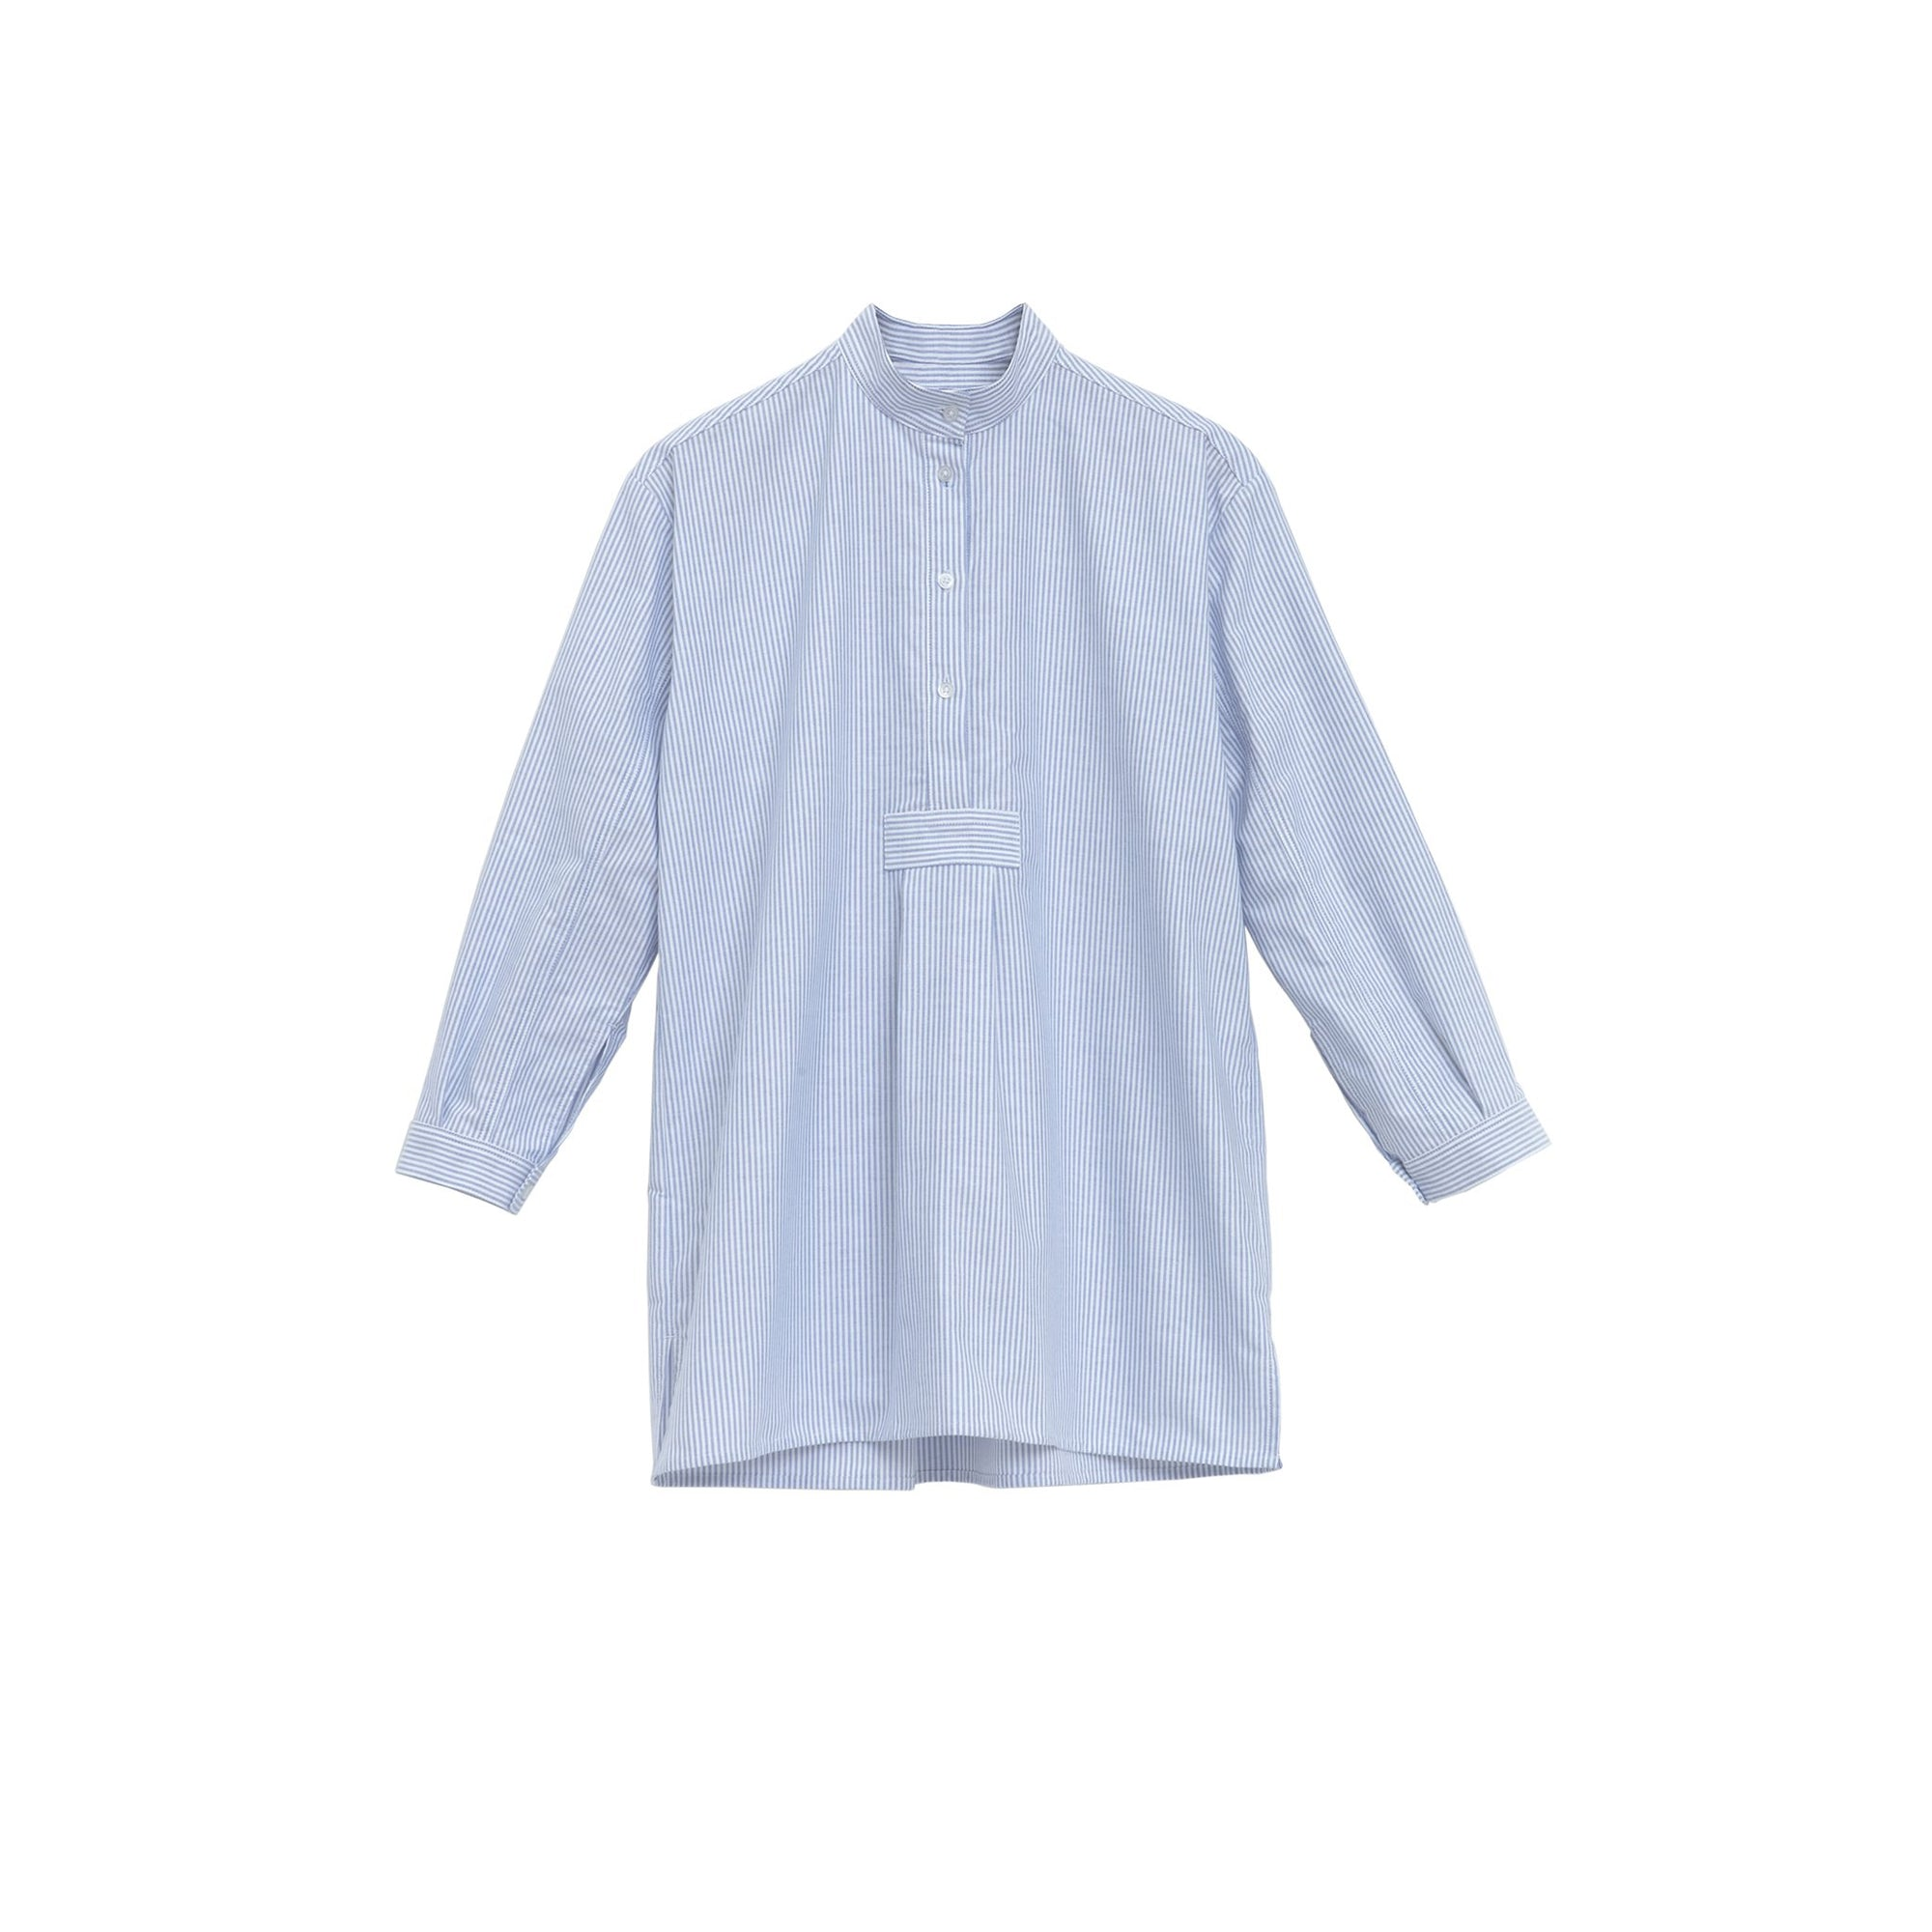 Short Sleep Shirt in Blue Oxford Stripe